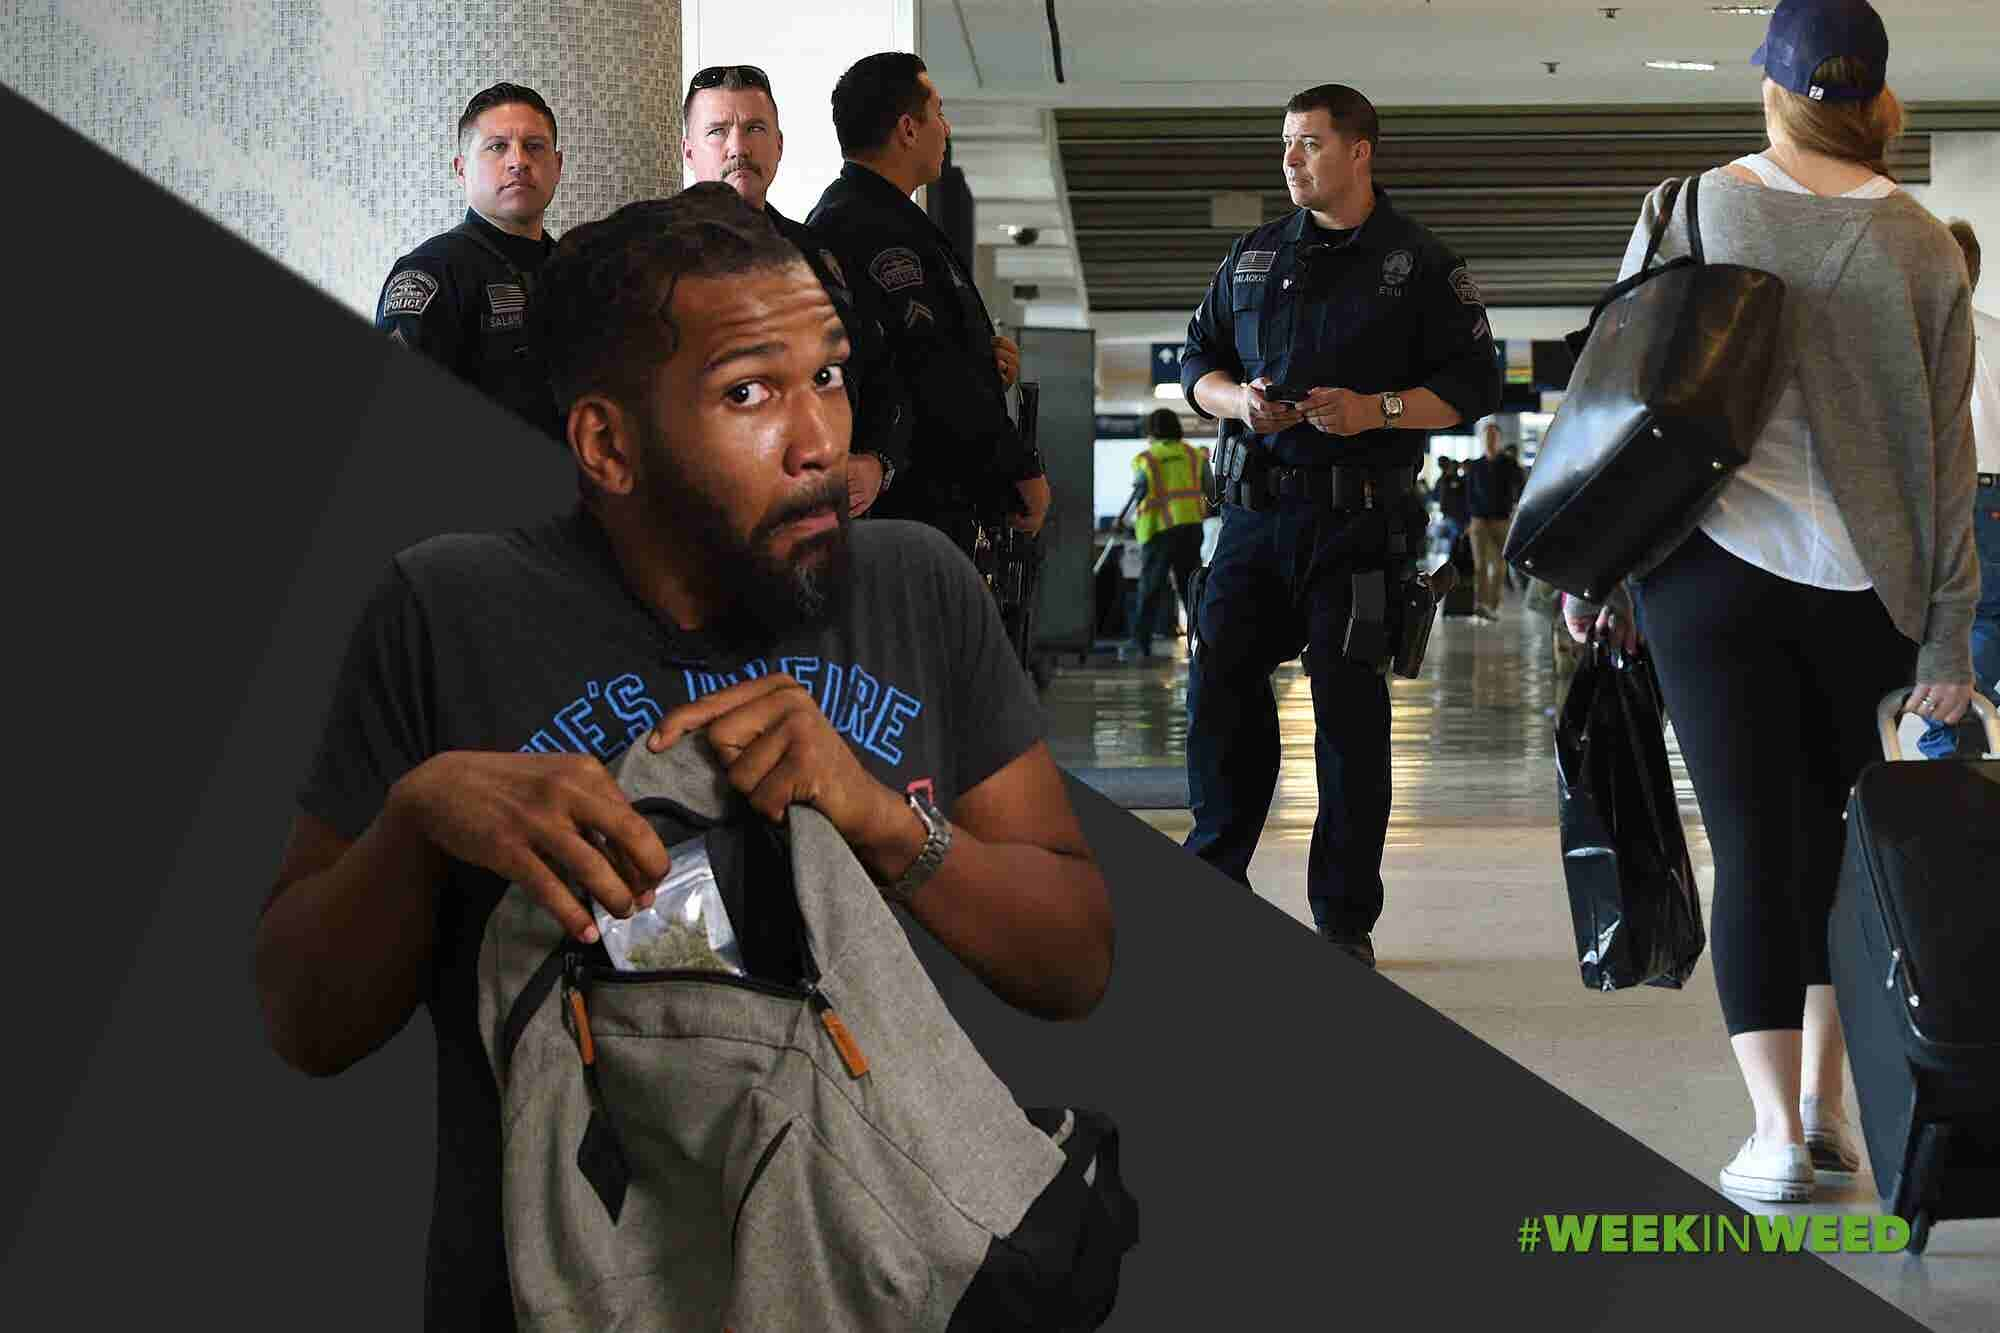 This Week in Weed: LAX Allowing Carry-On Cannabis :)